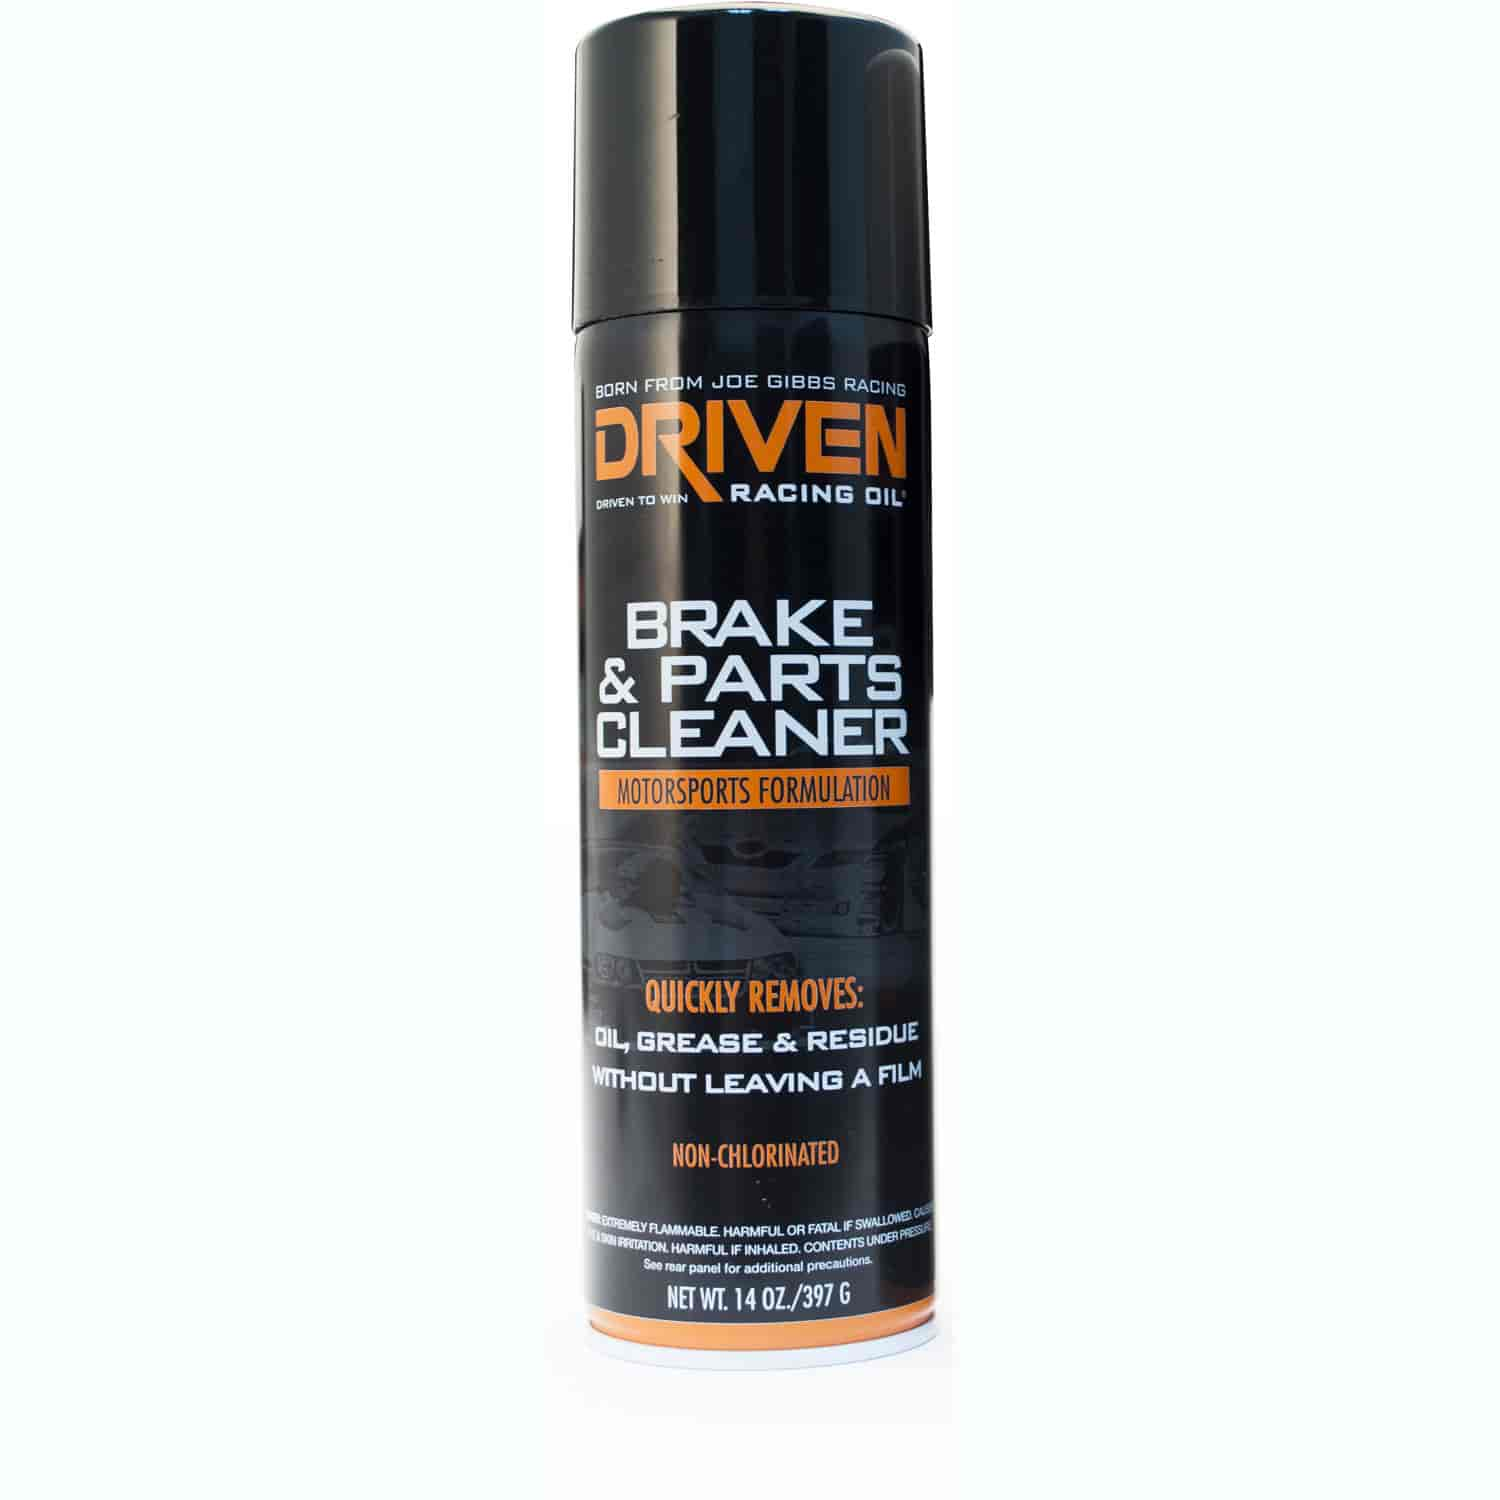 Driven Racing Oil 50020